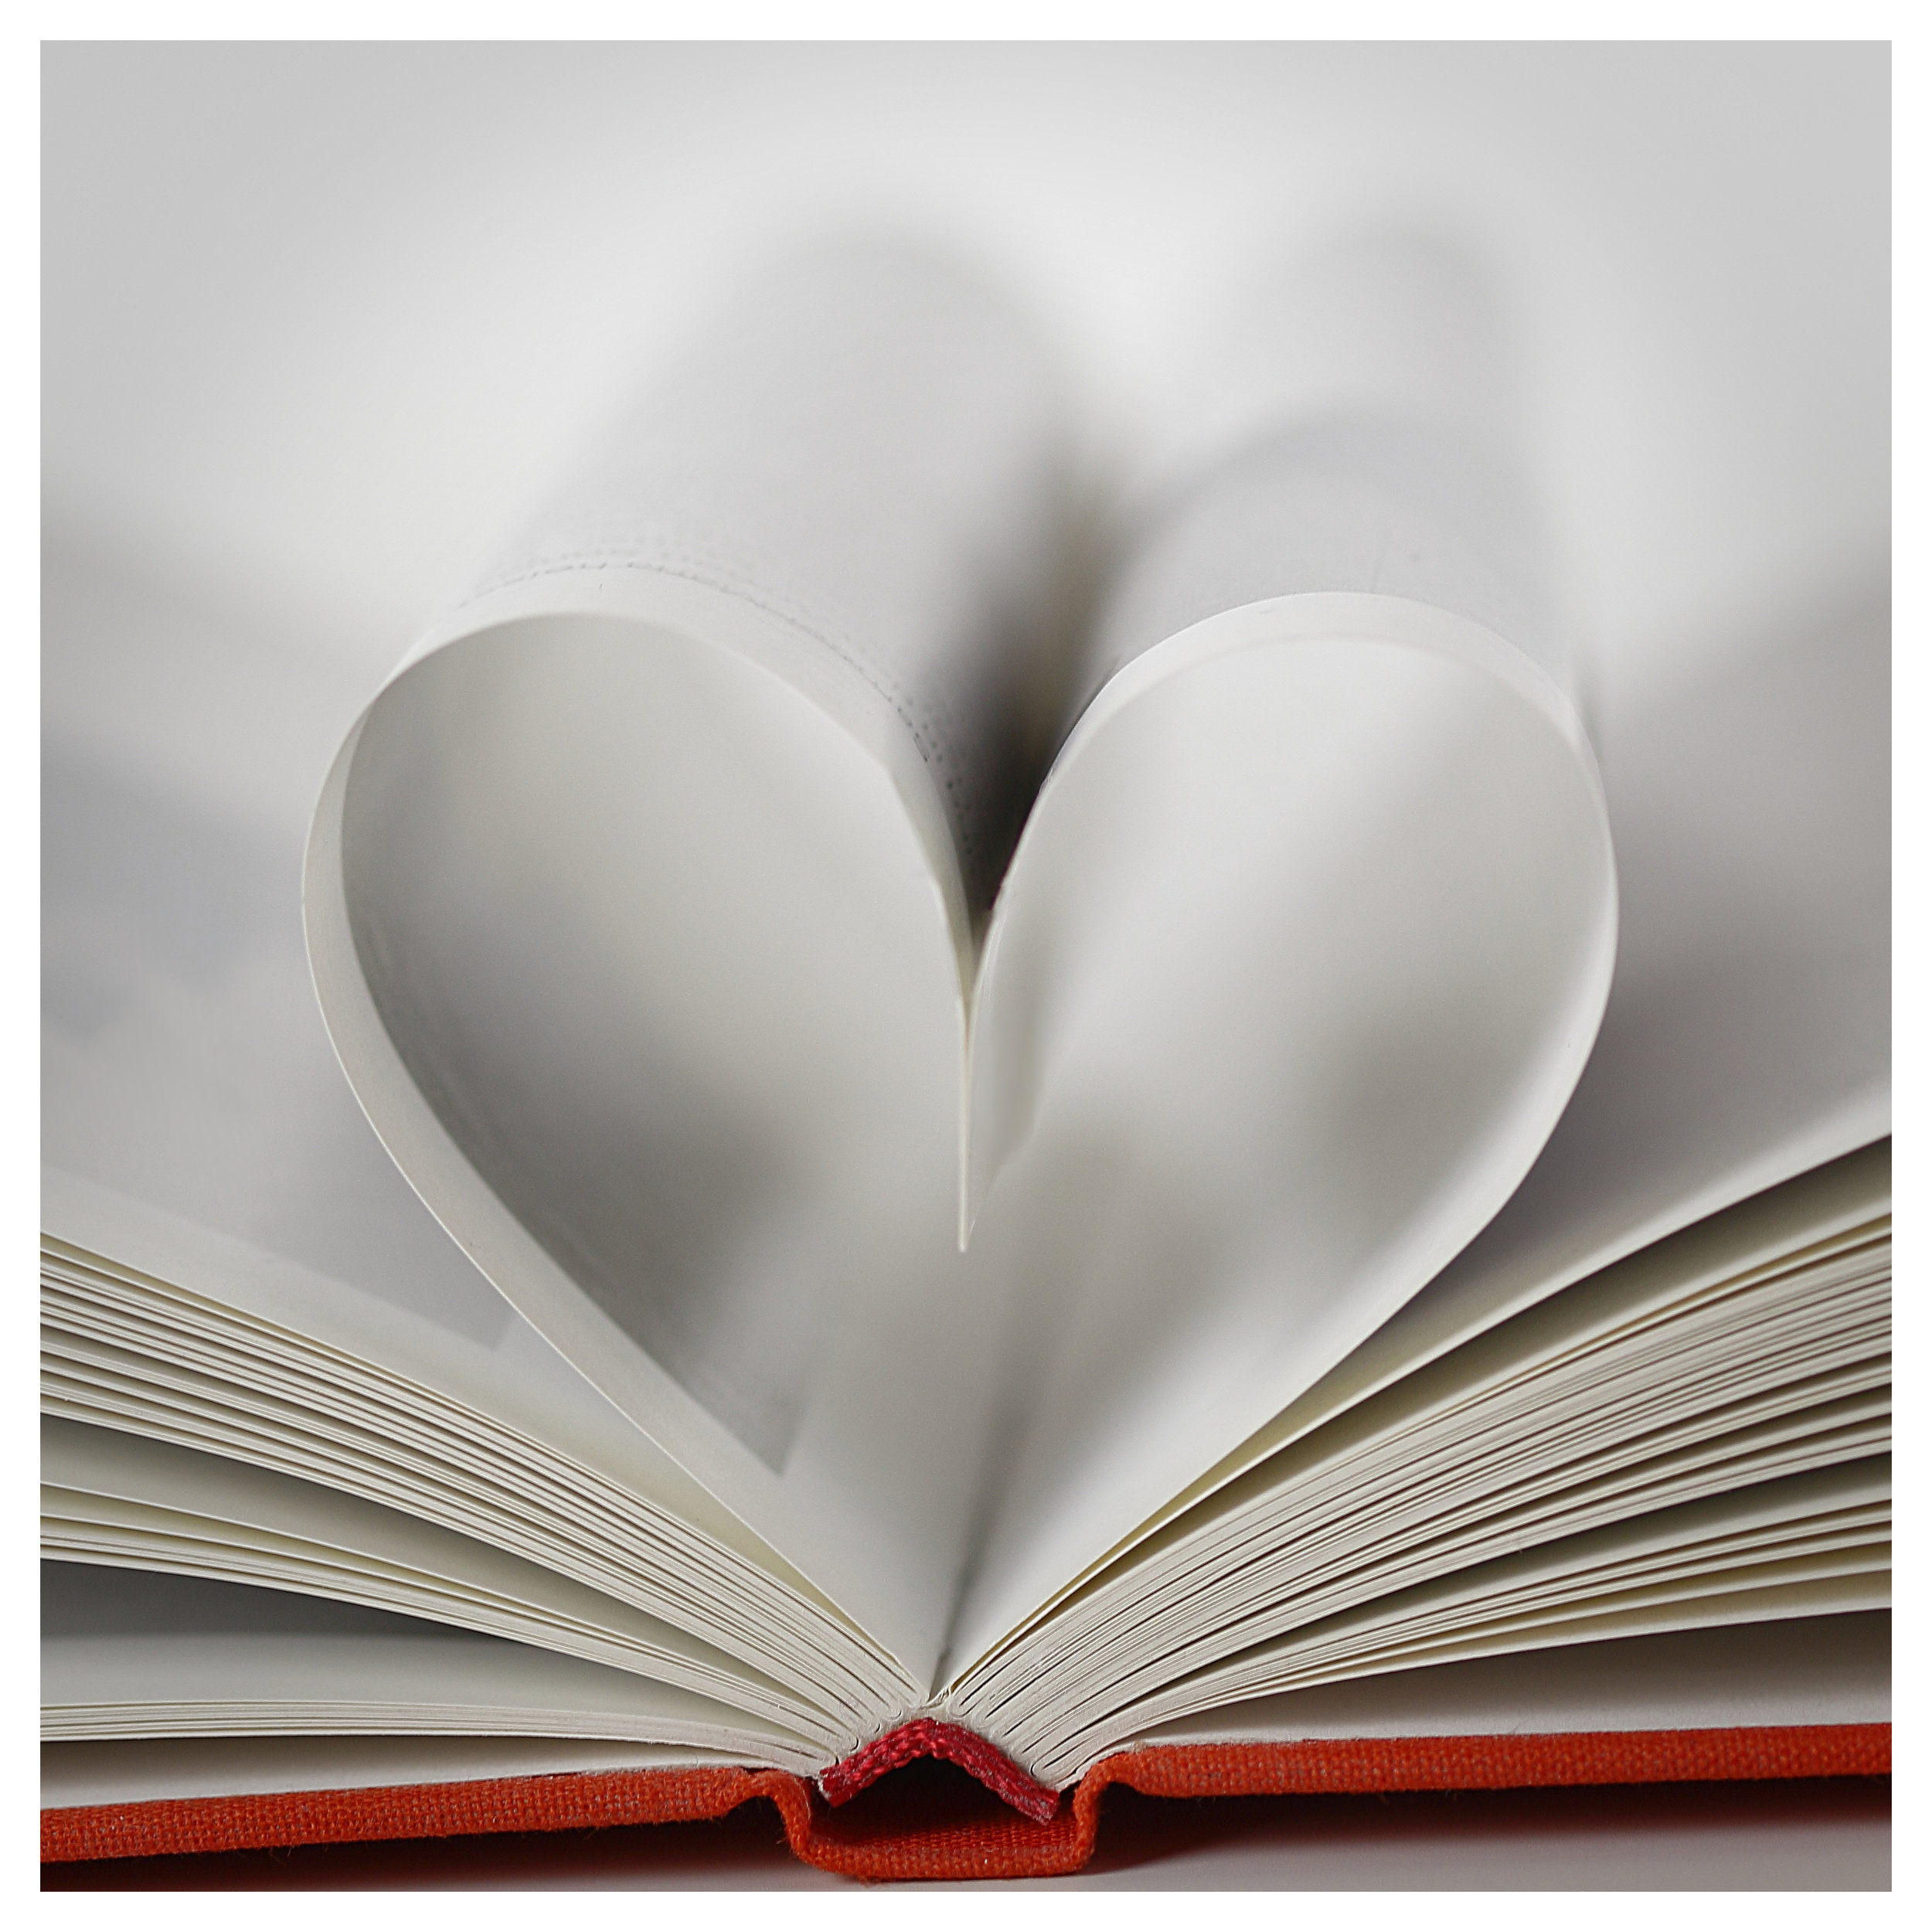 Recommended Books - Below are some books our East Bay sex therapists, couples counselors and psychologists have found to be helpful to our clients in working through a variety of issues.